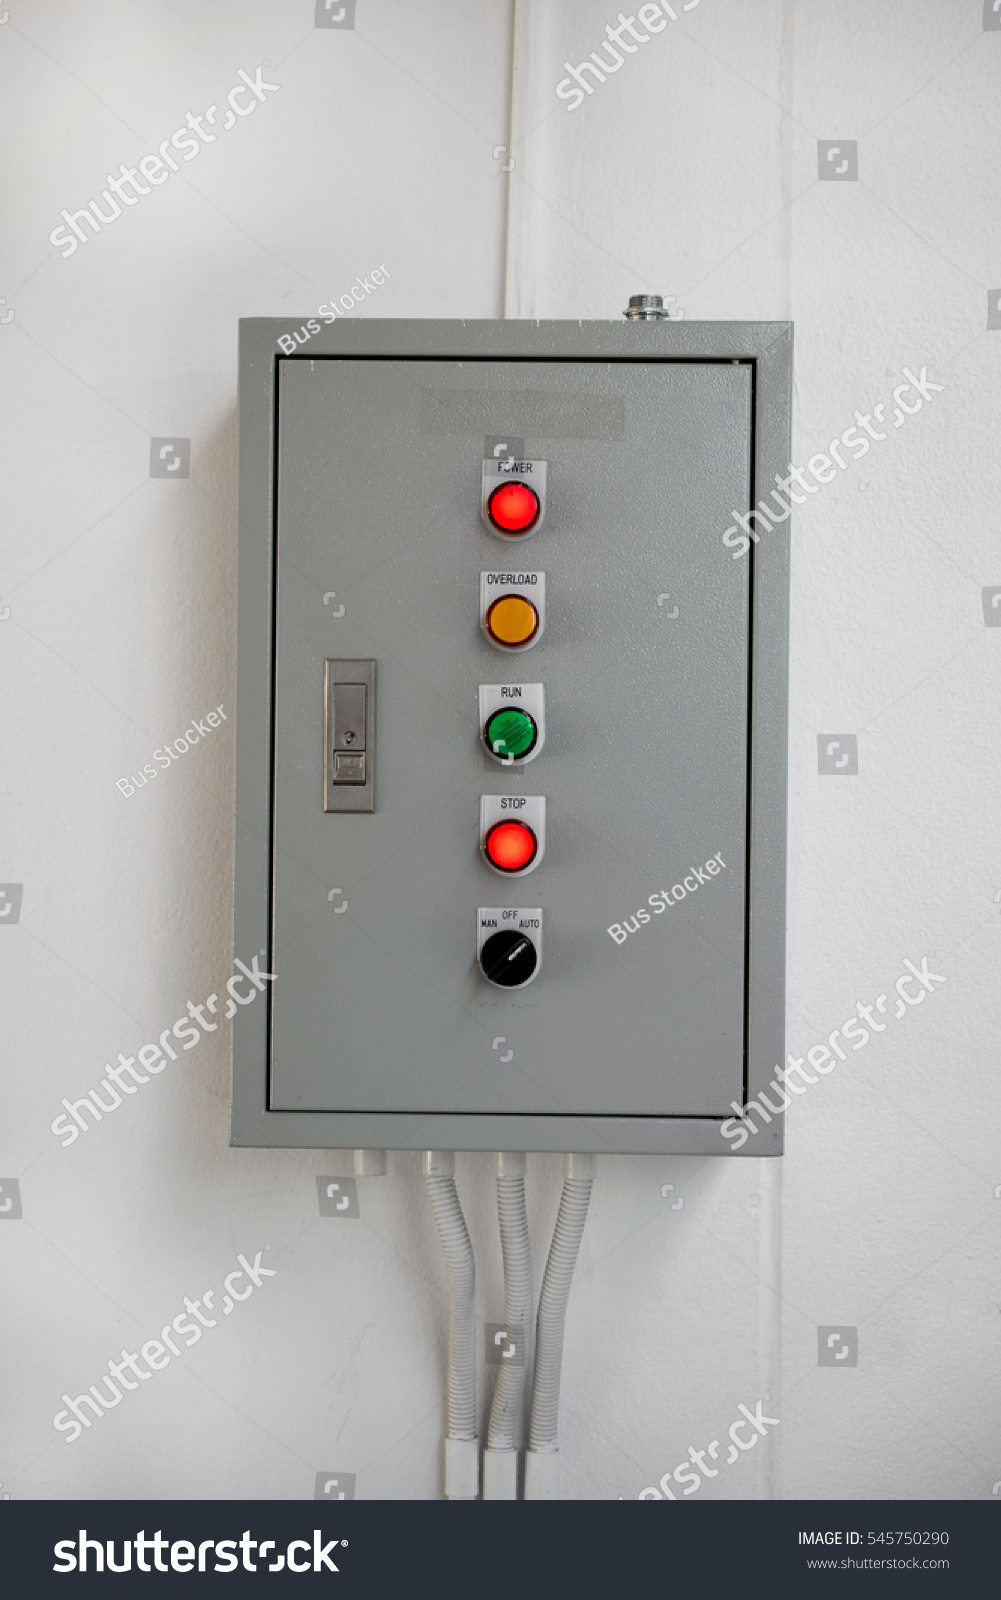 Electric Control Box Stock Photo (Edit Now) 545750290 - Shutterstock